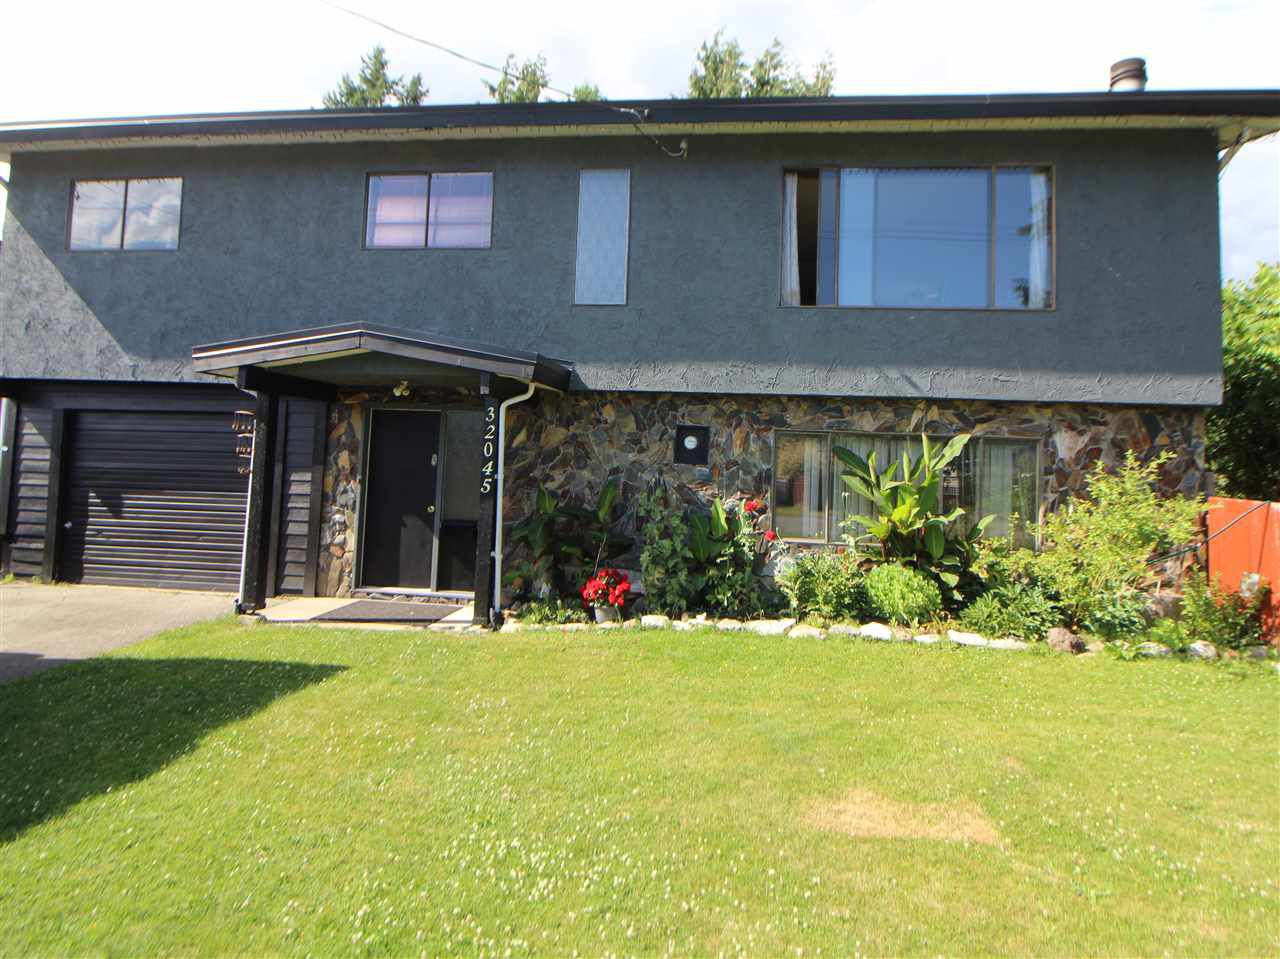 Main Photo: 32045 TEREPOCKI Crescent in Mission: Mission BC House for sale : MLS®# R2381848